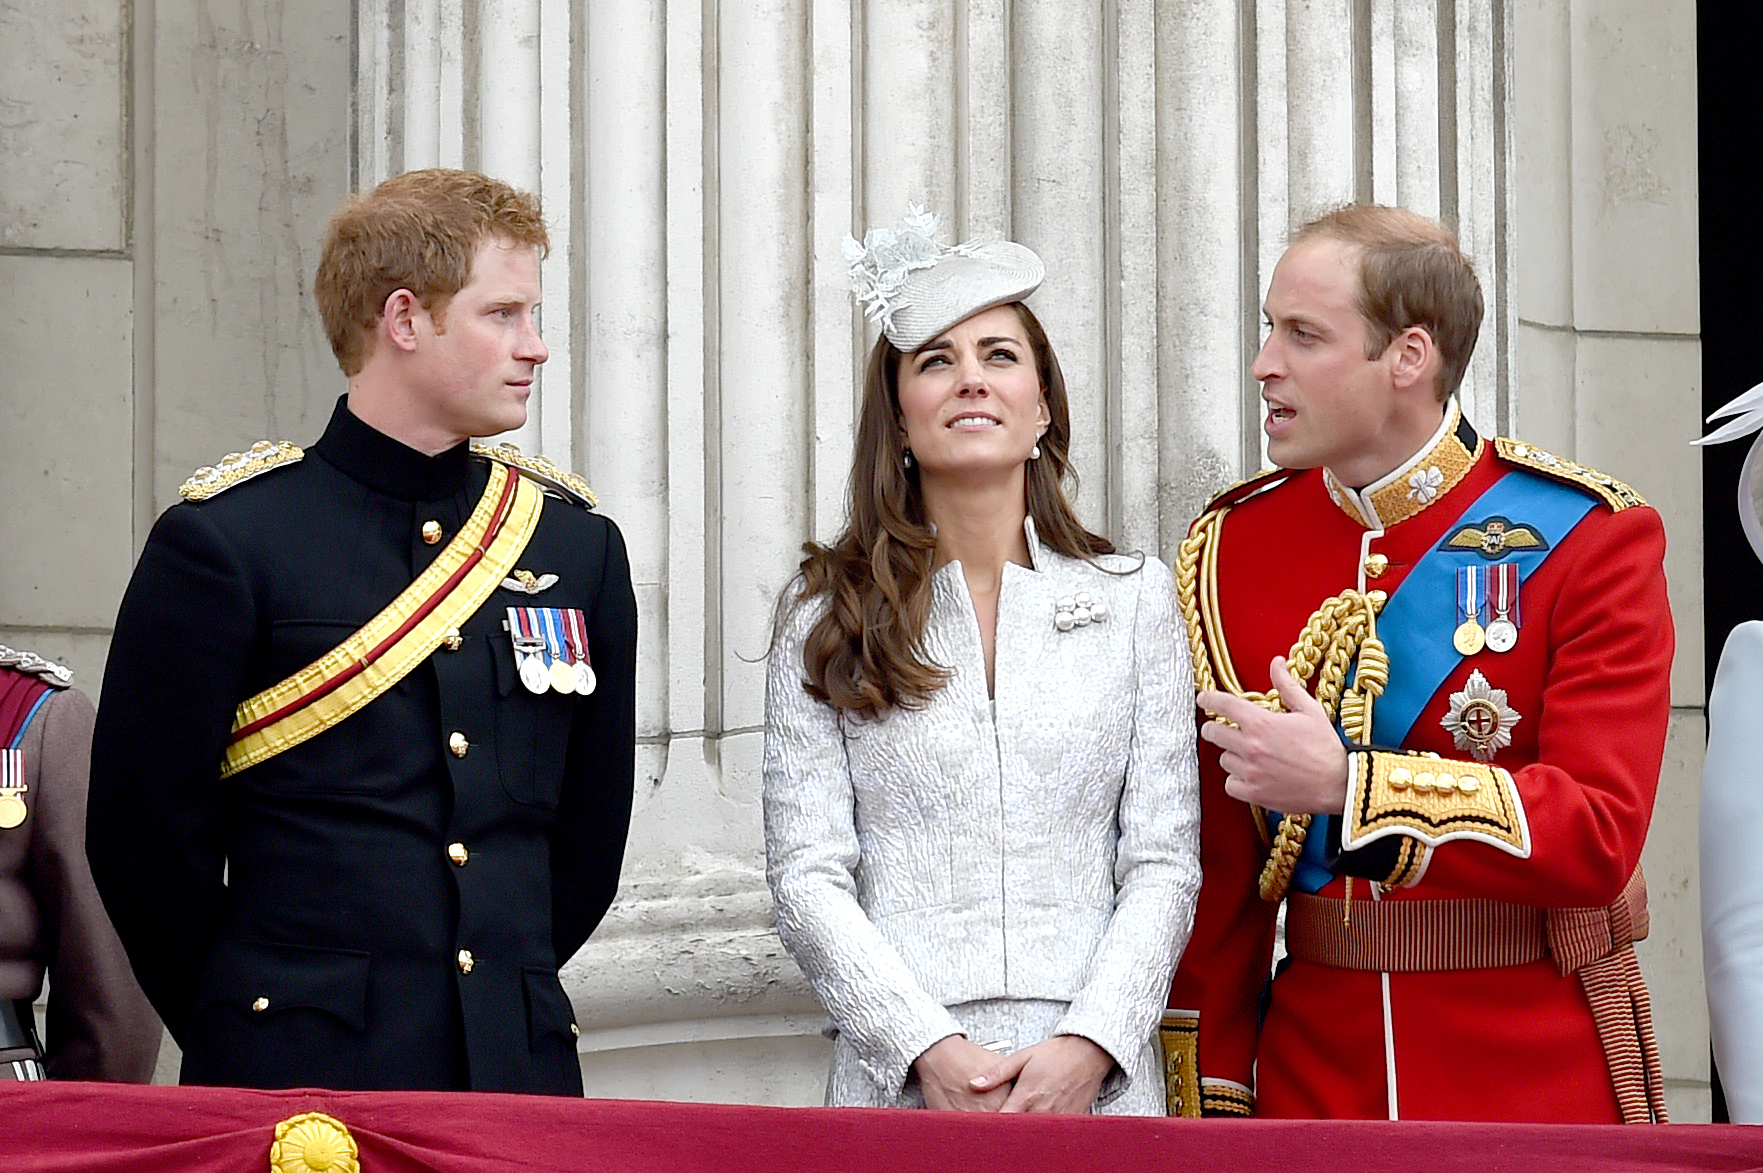 Prince William and Kate were once believed to be very close with Prince Harry.